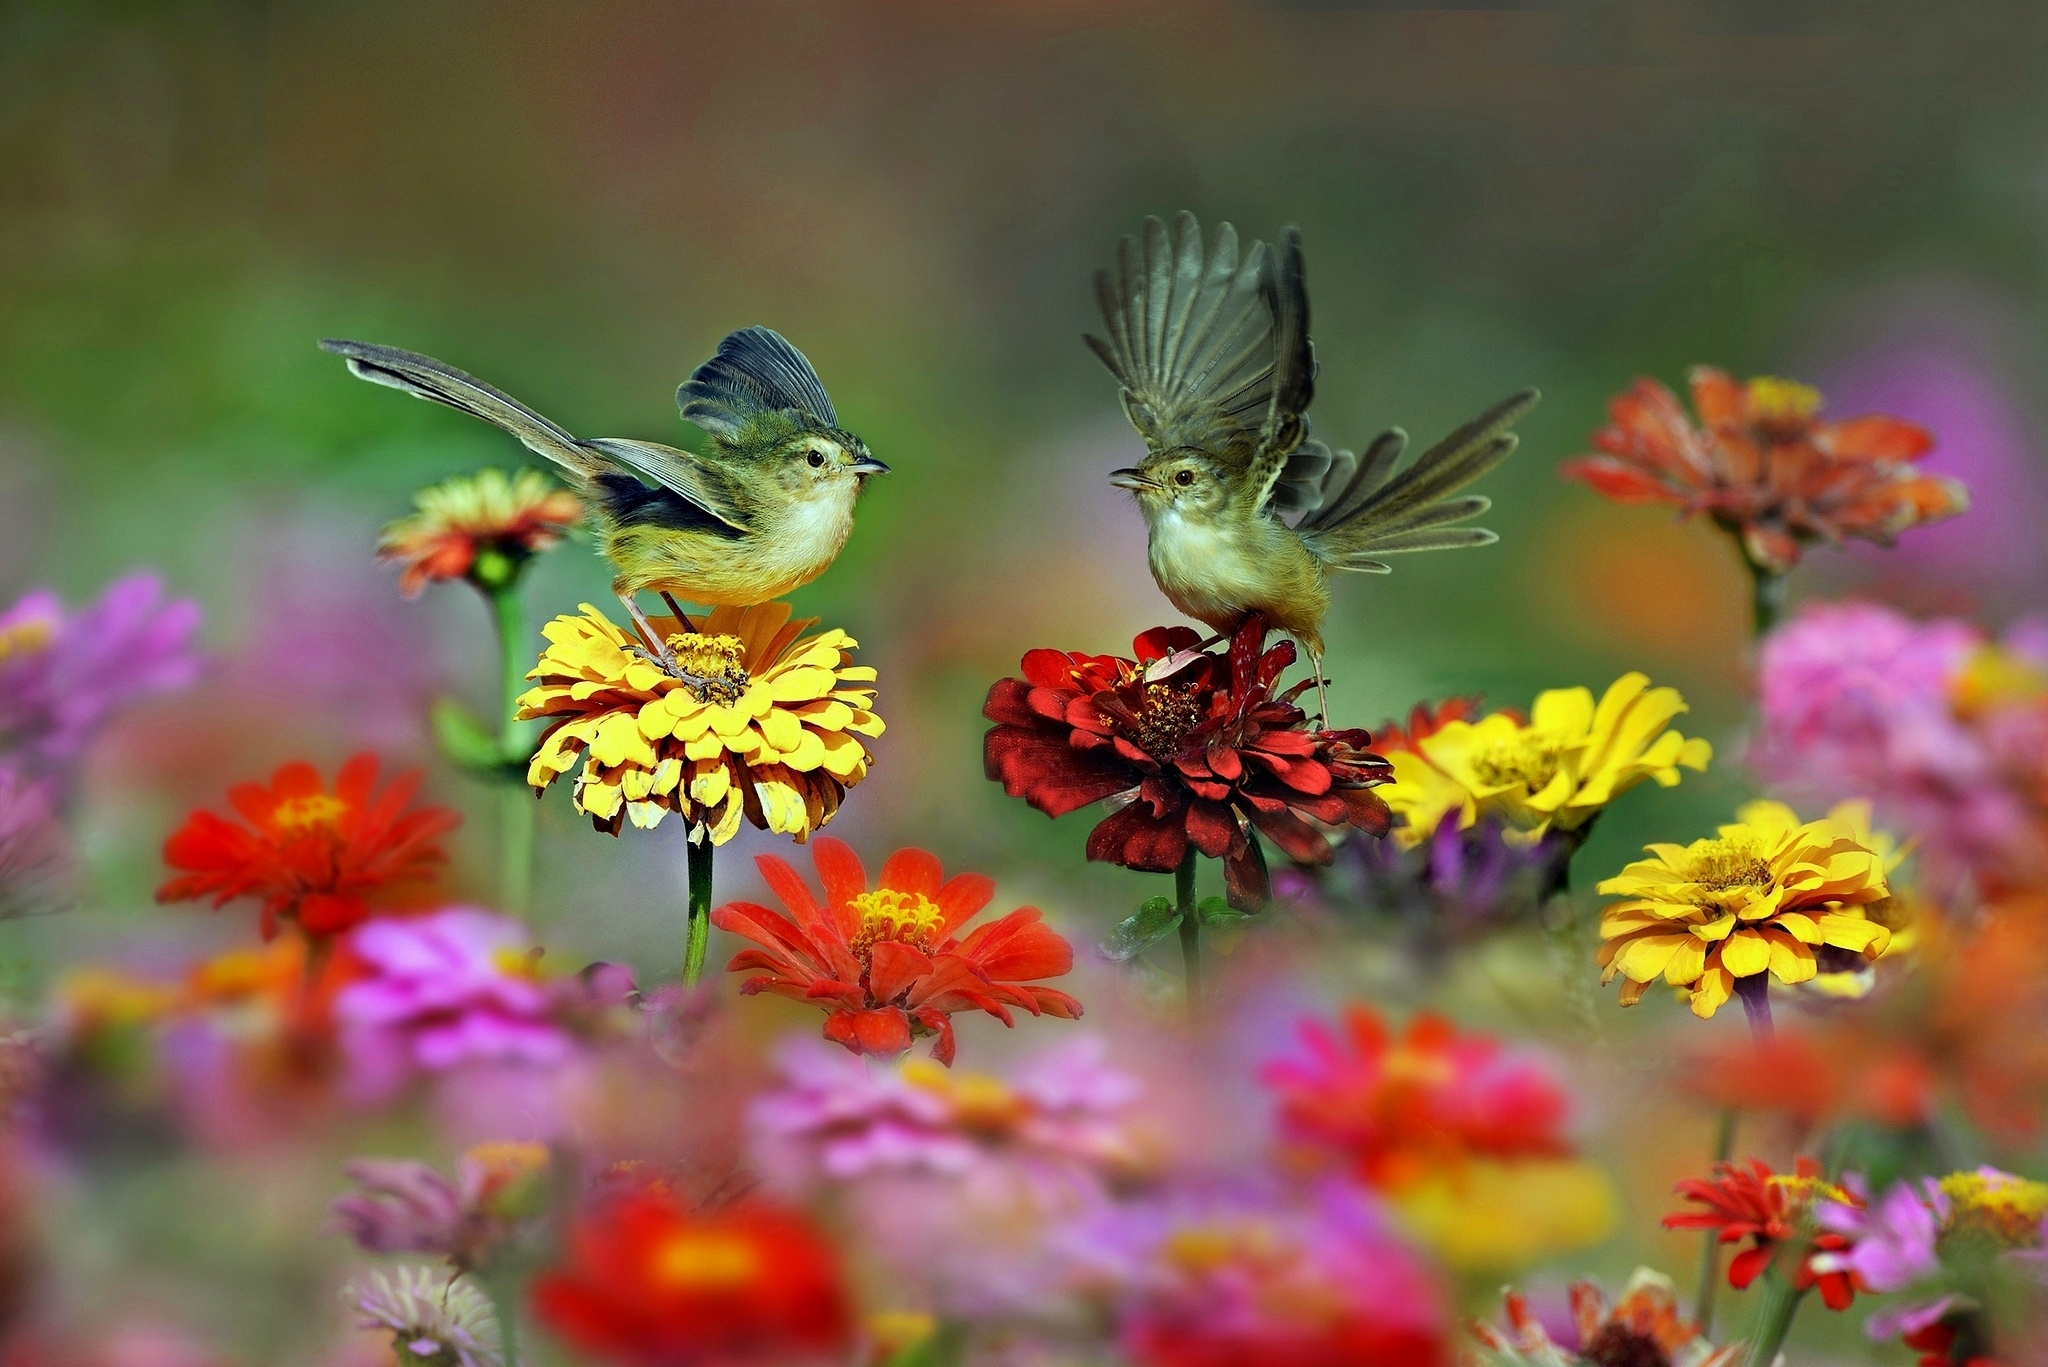 Flowers And Bird Wallpapers Wallpaper Cave Animals seasons flowers city and architecture holidays carshouse and comfort food & drink movies texture space motorcycles birds animeweapons and army brands and logos sports humor and satire children digital. bird wallpapers wallpaper cave